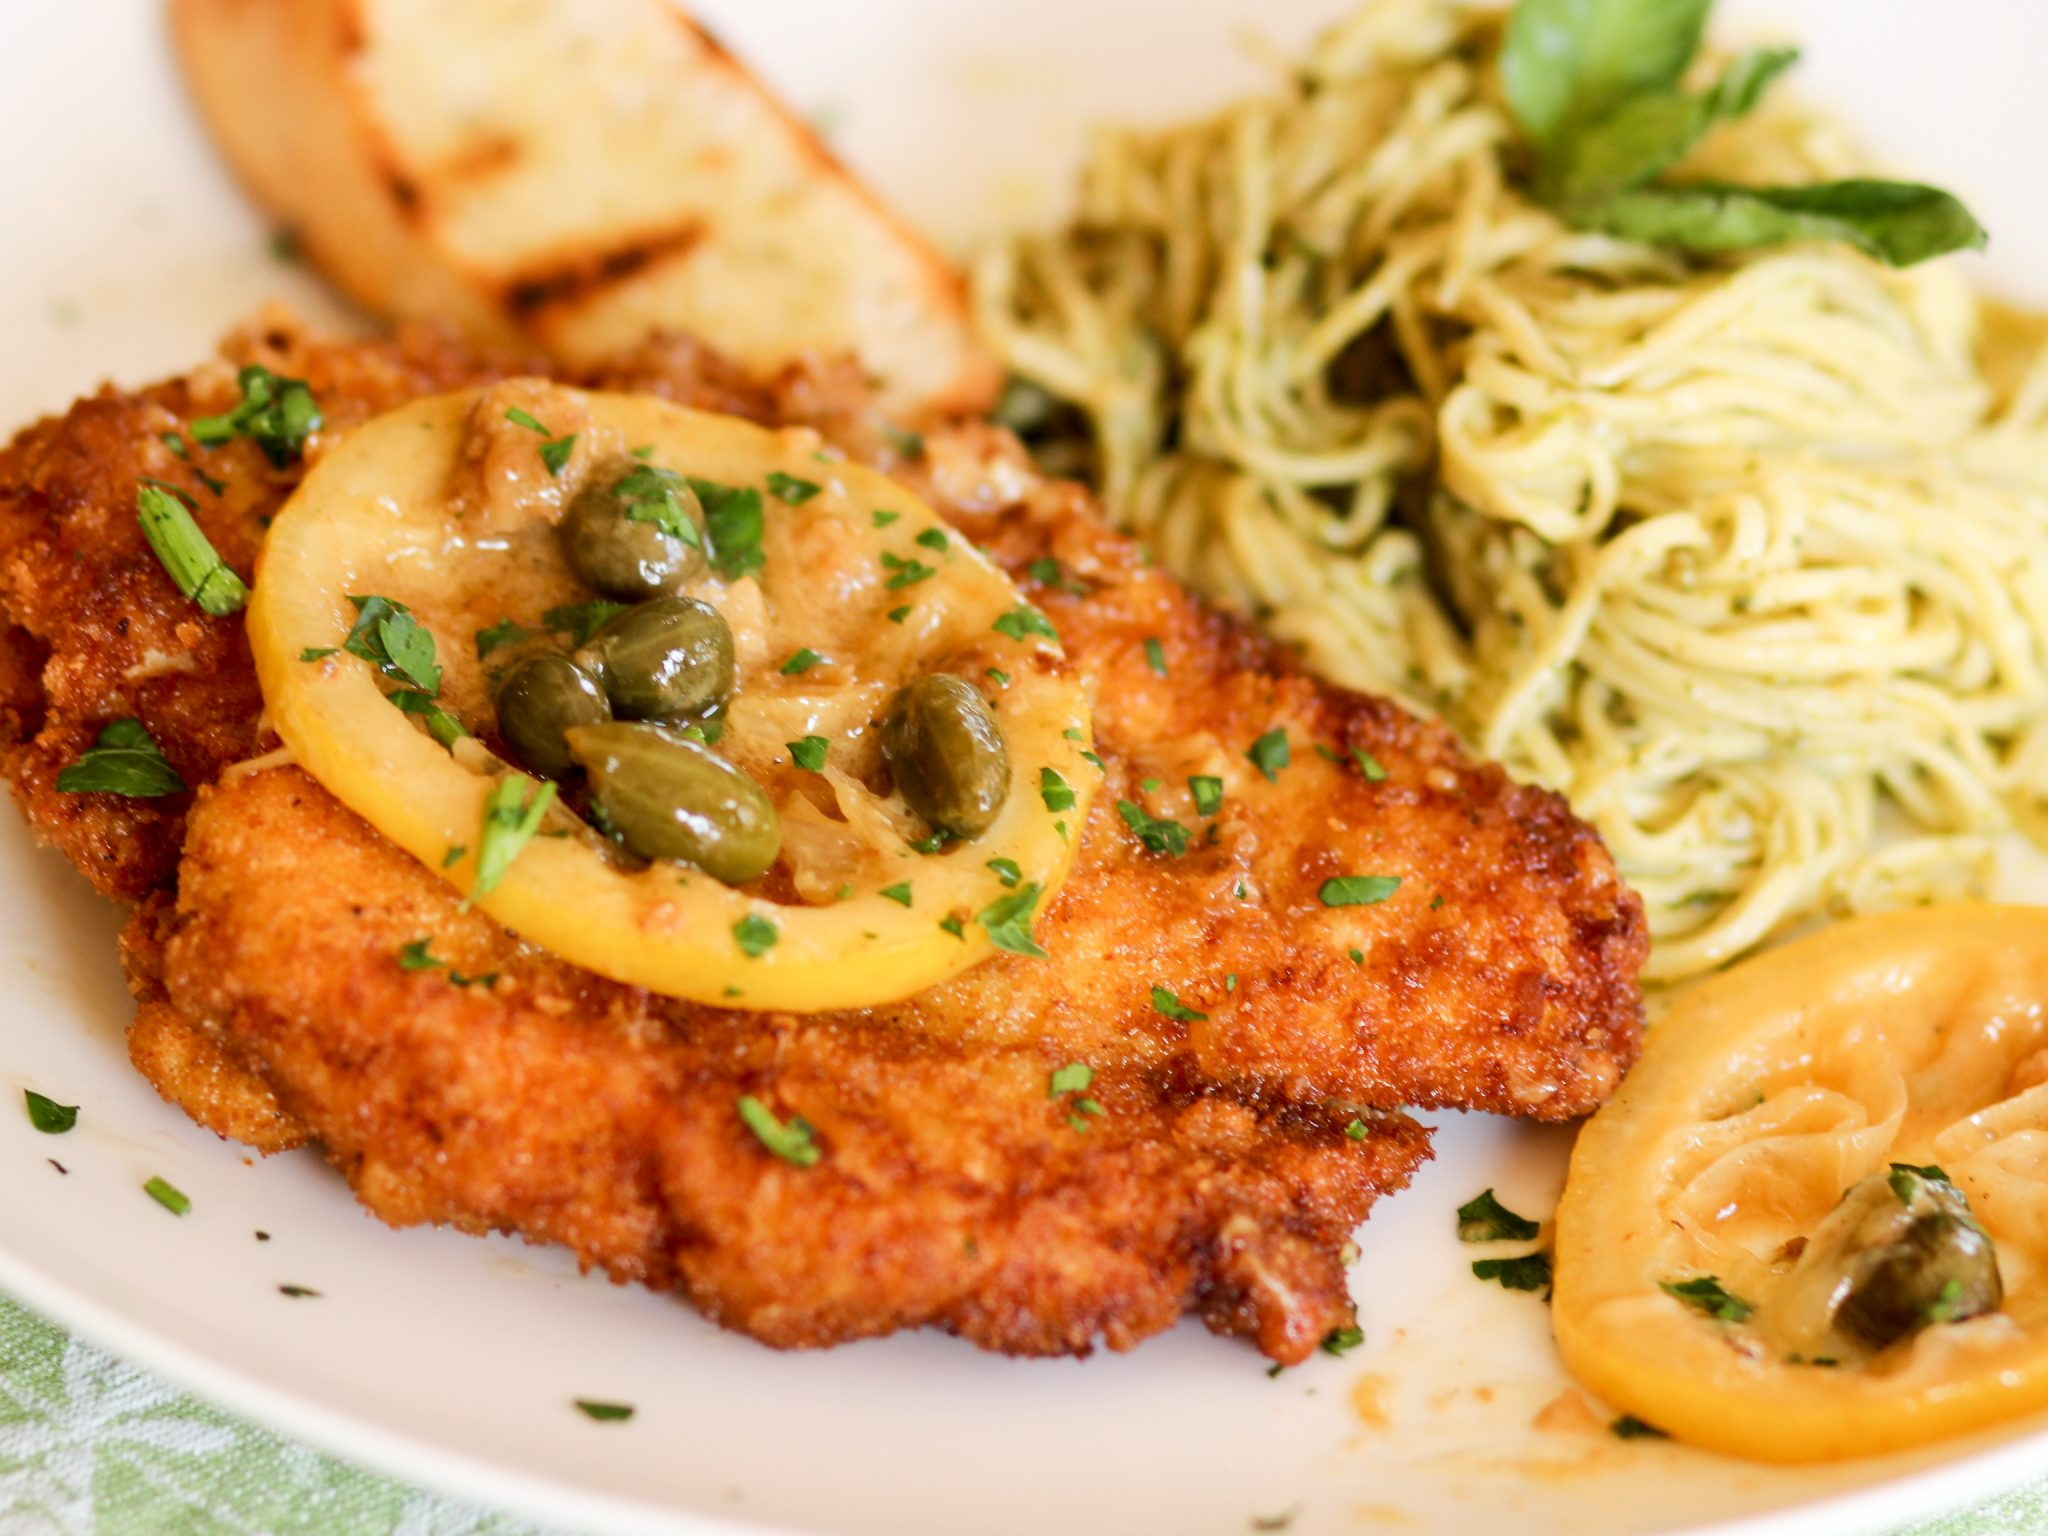 Chicken Piccata Is Simply Divine And Easy To Make At Home Too! Once You  Learn To Make Juicy, Fried Chicken Cutlets, The Sauce Options Are Endless